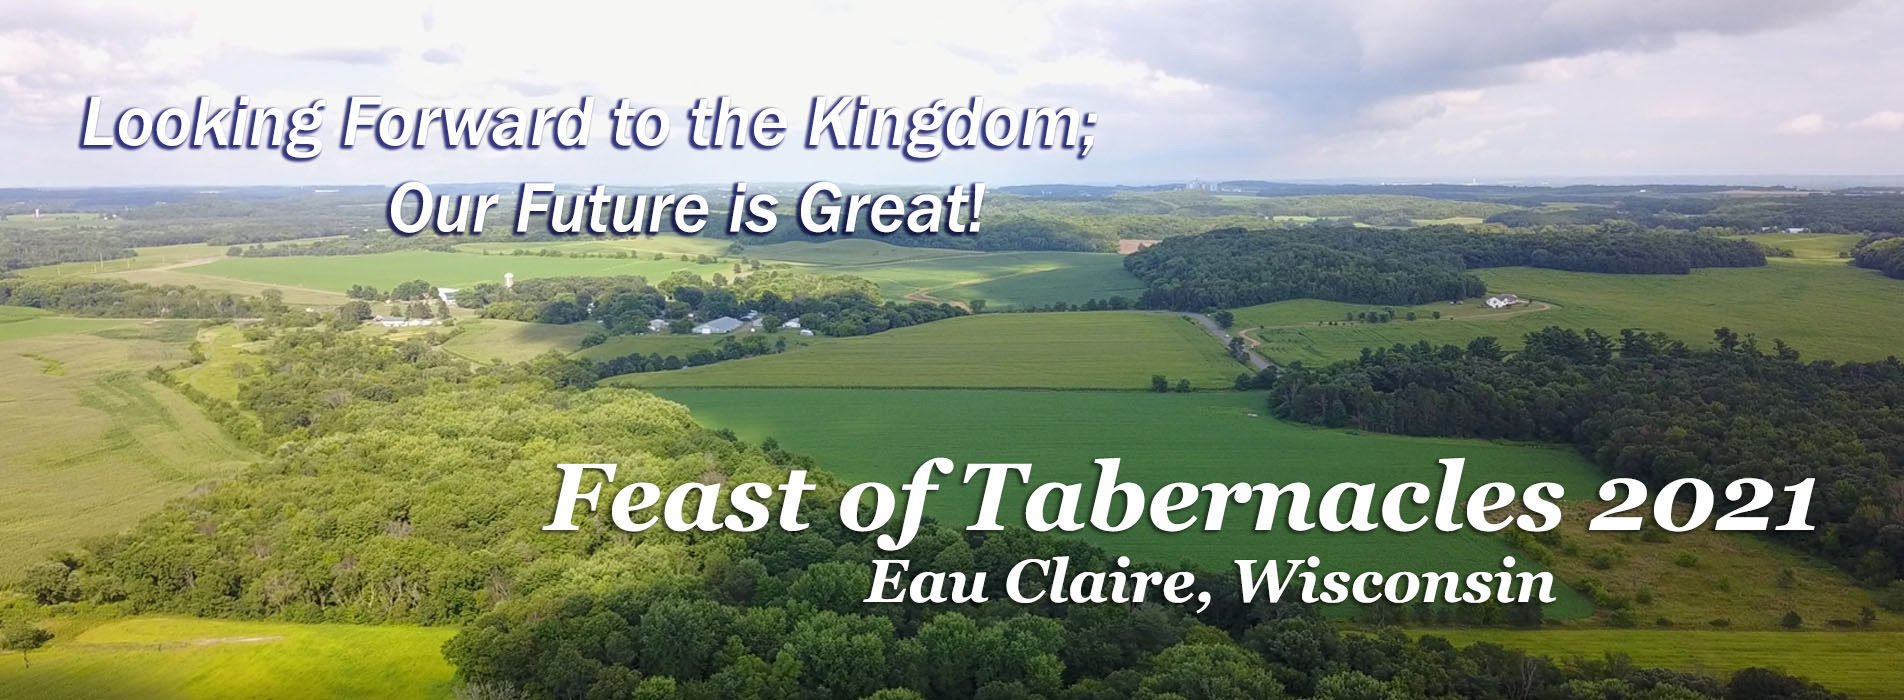 Feast of Tabernacles 2021 -Eau Claire, WI